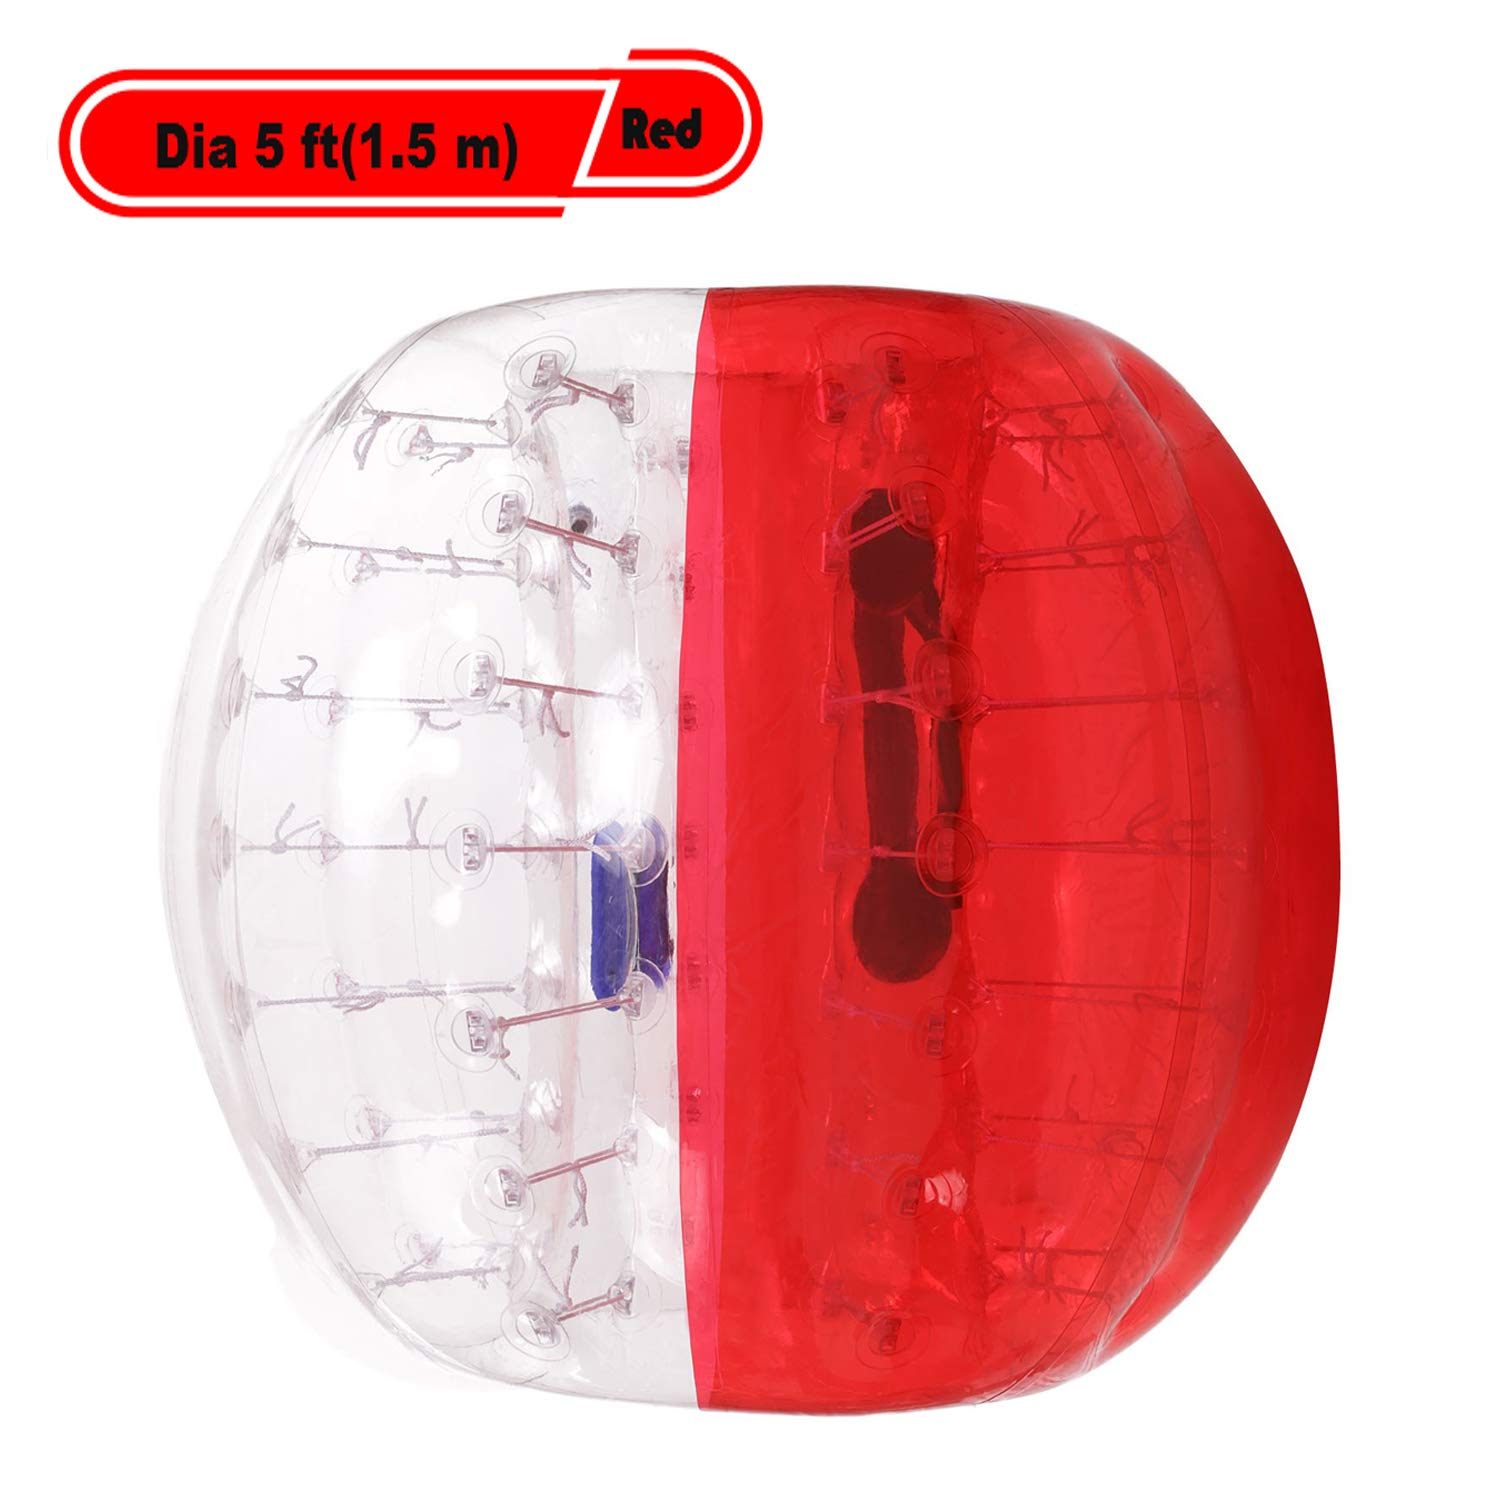 Yiilove Inflatable Bumper Ball 4 ft/5 ft(1.2/1.5 m) Bubble Soccer Ball Transparent Material Human Knocker Ballfor Adults and Kids (Dia 5 ft(1.5 m)-Red)